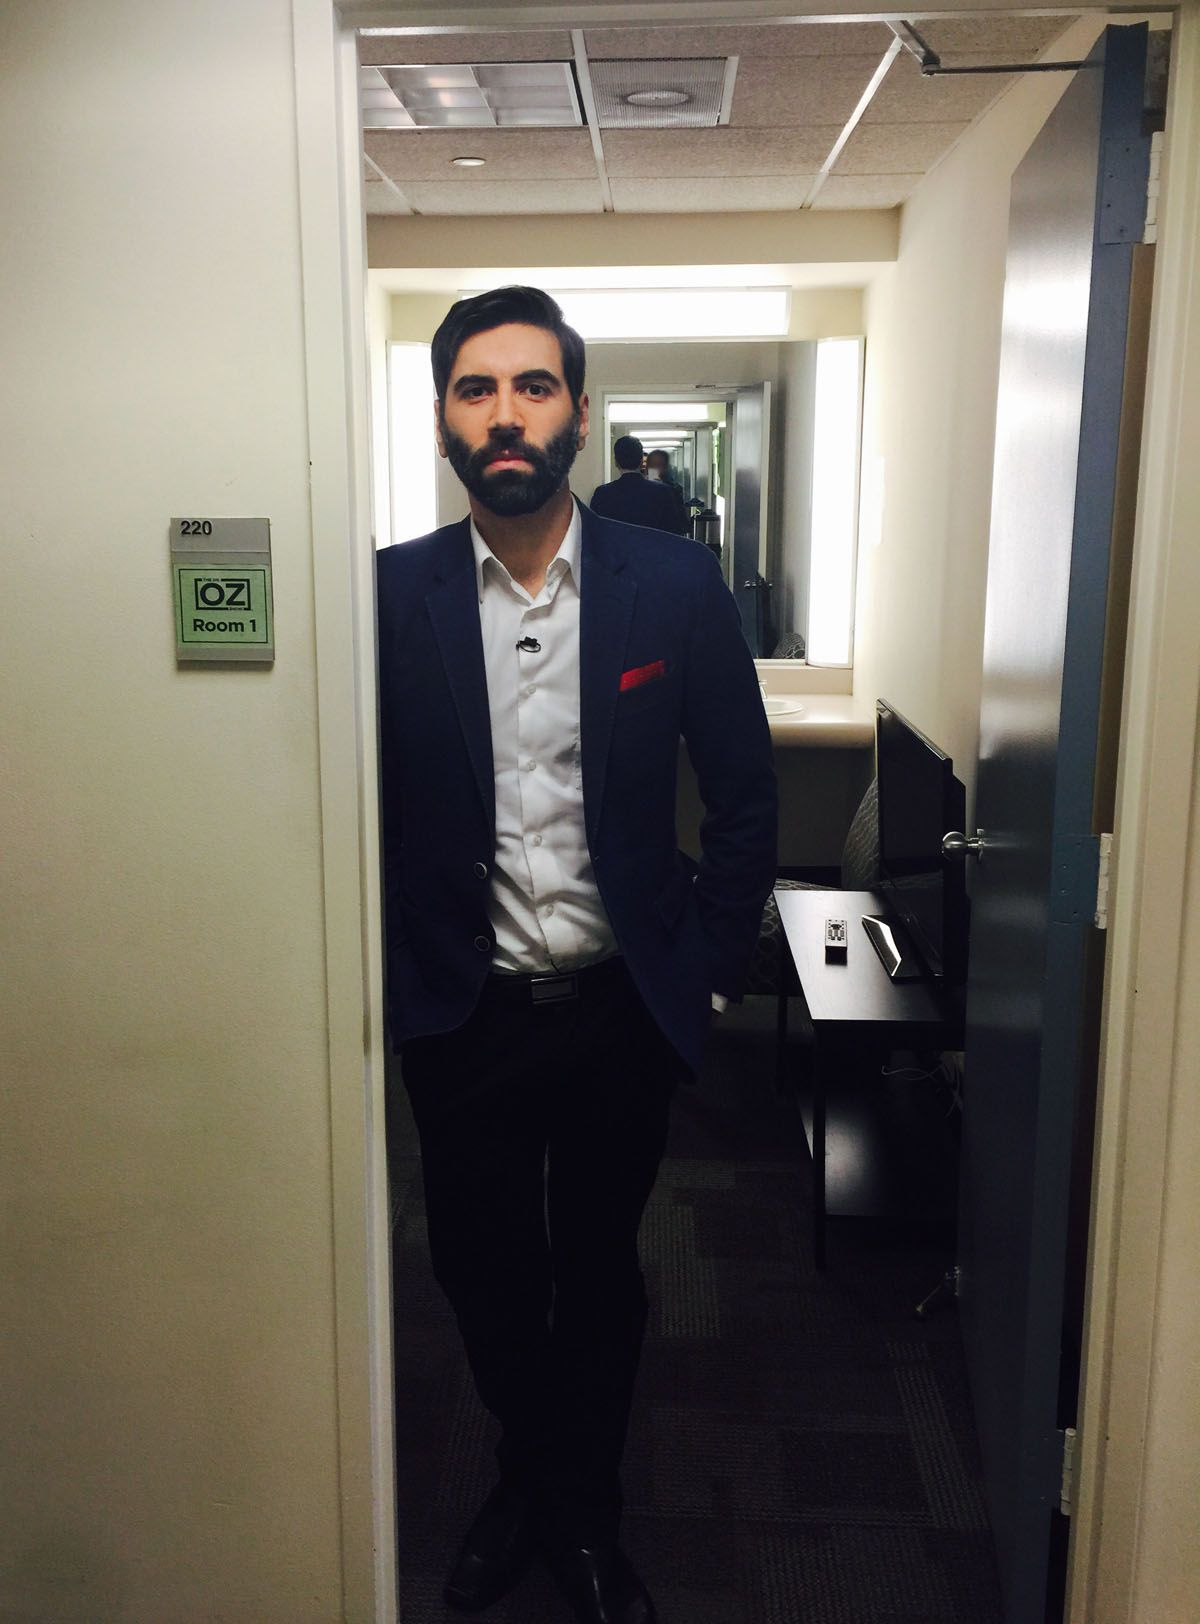 Roosh V?s journey from pickup artist to right-wing provocateur